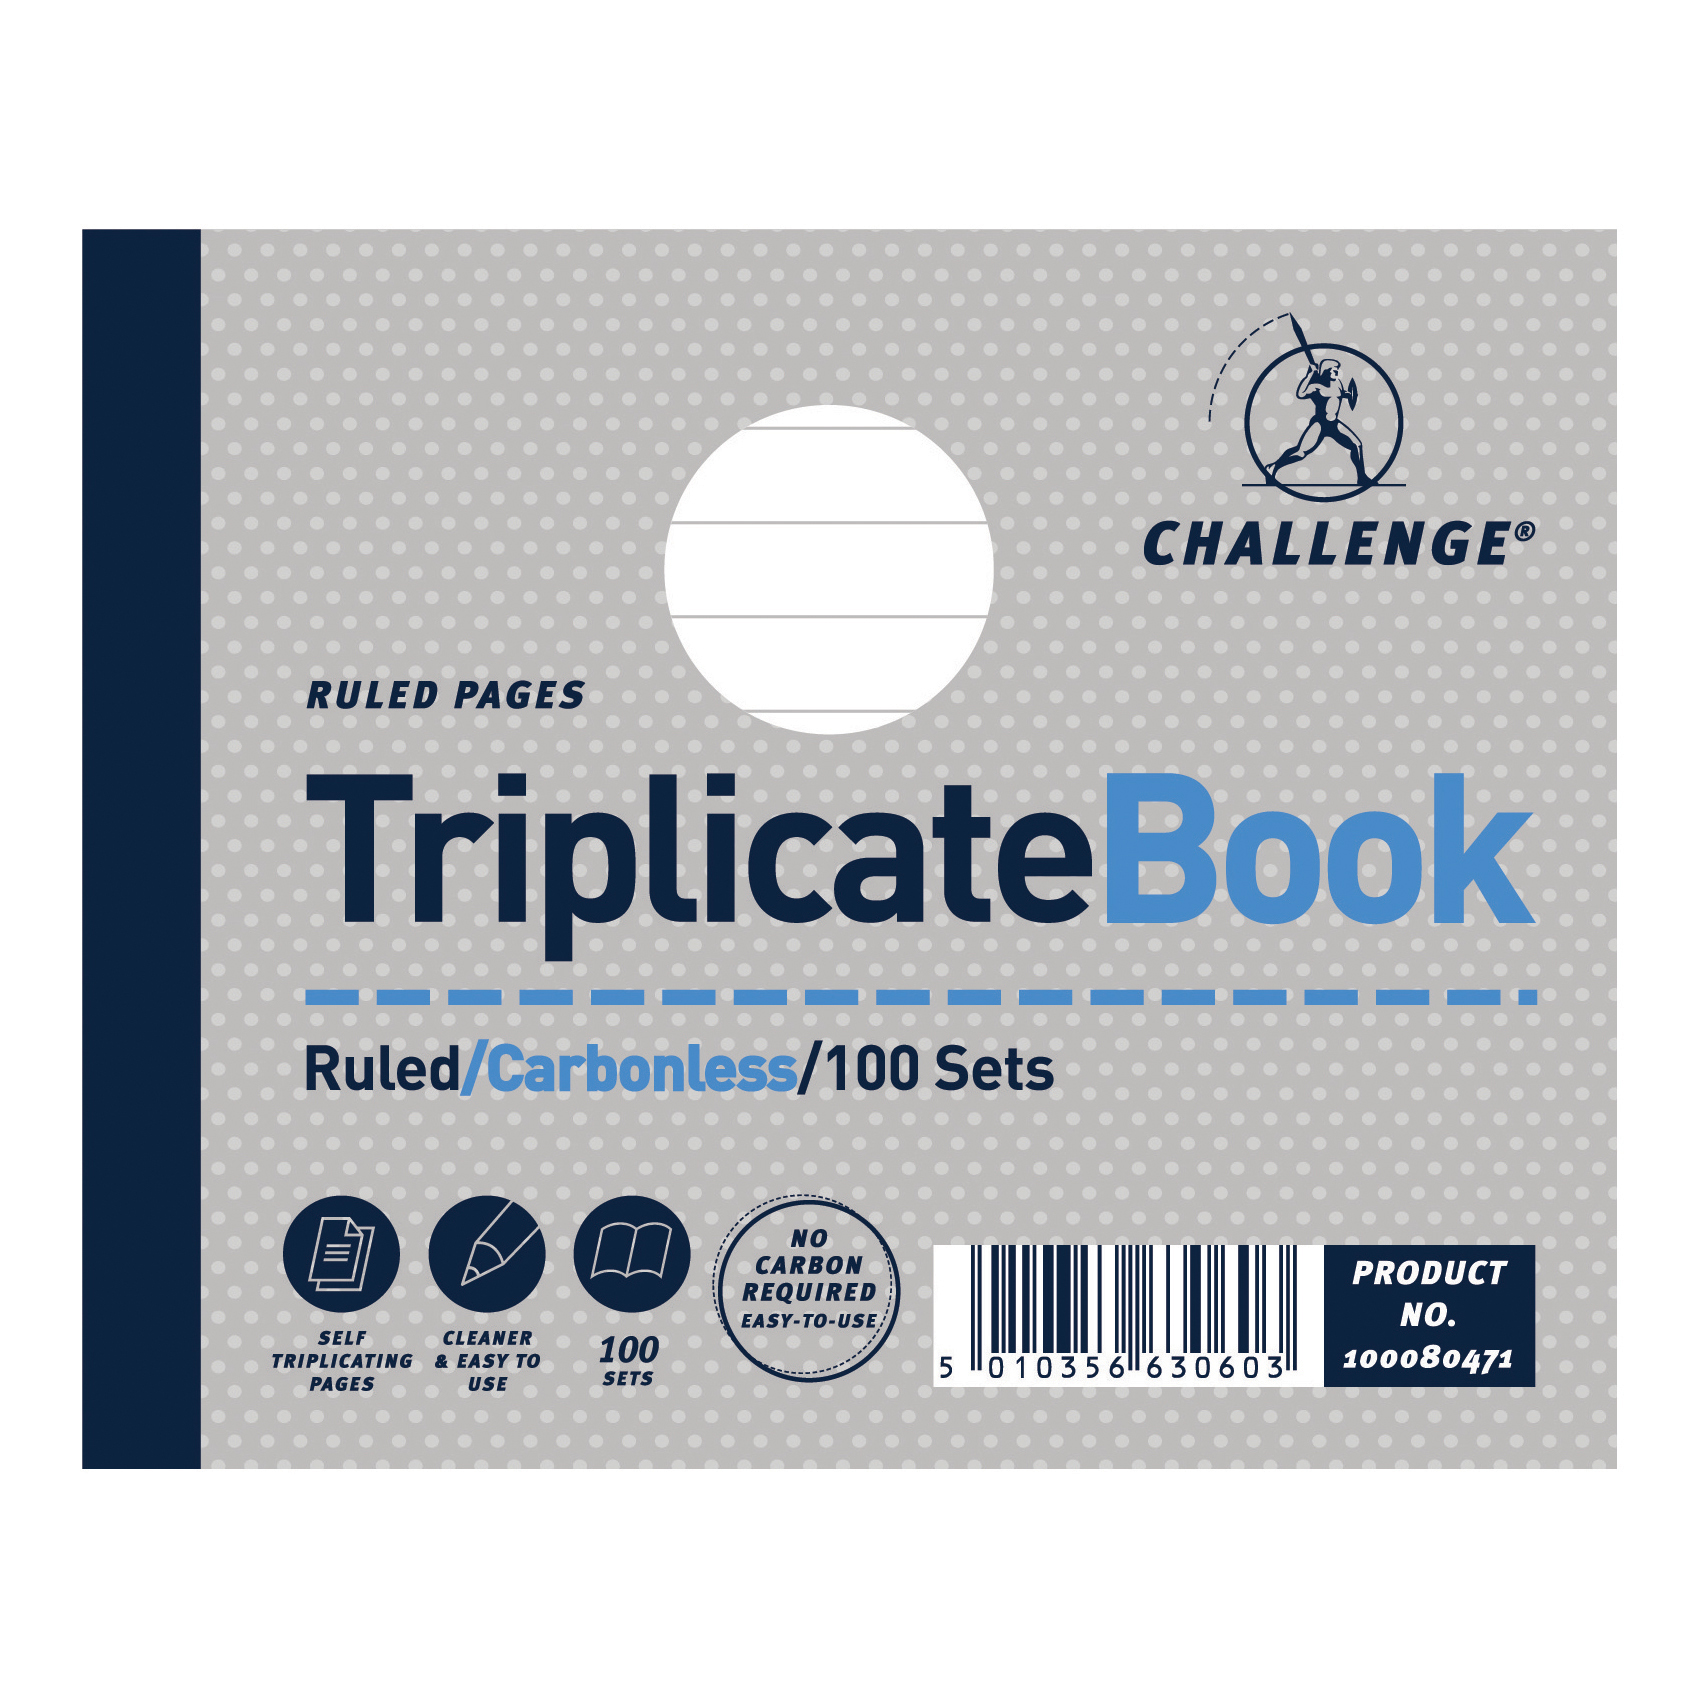 Challenge Triplicate Book Carbonless Ruled 100 Sets 105x130mm Ref 100080471 Pack 5